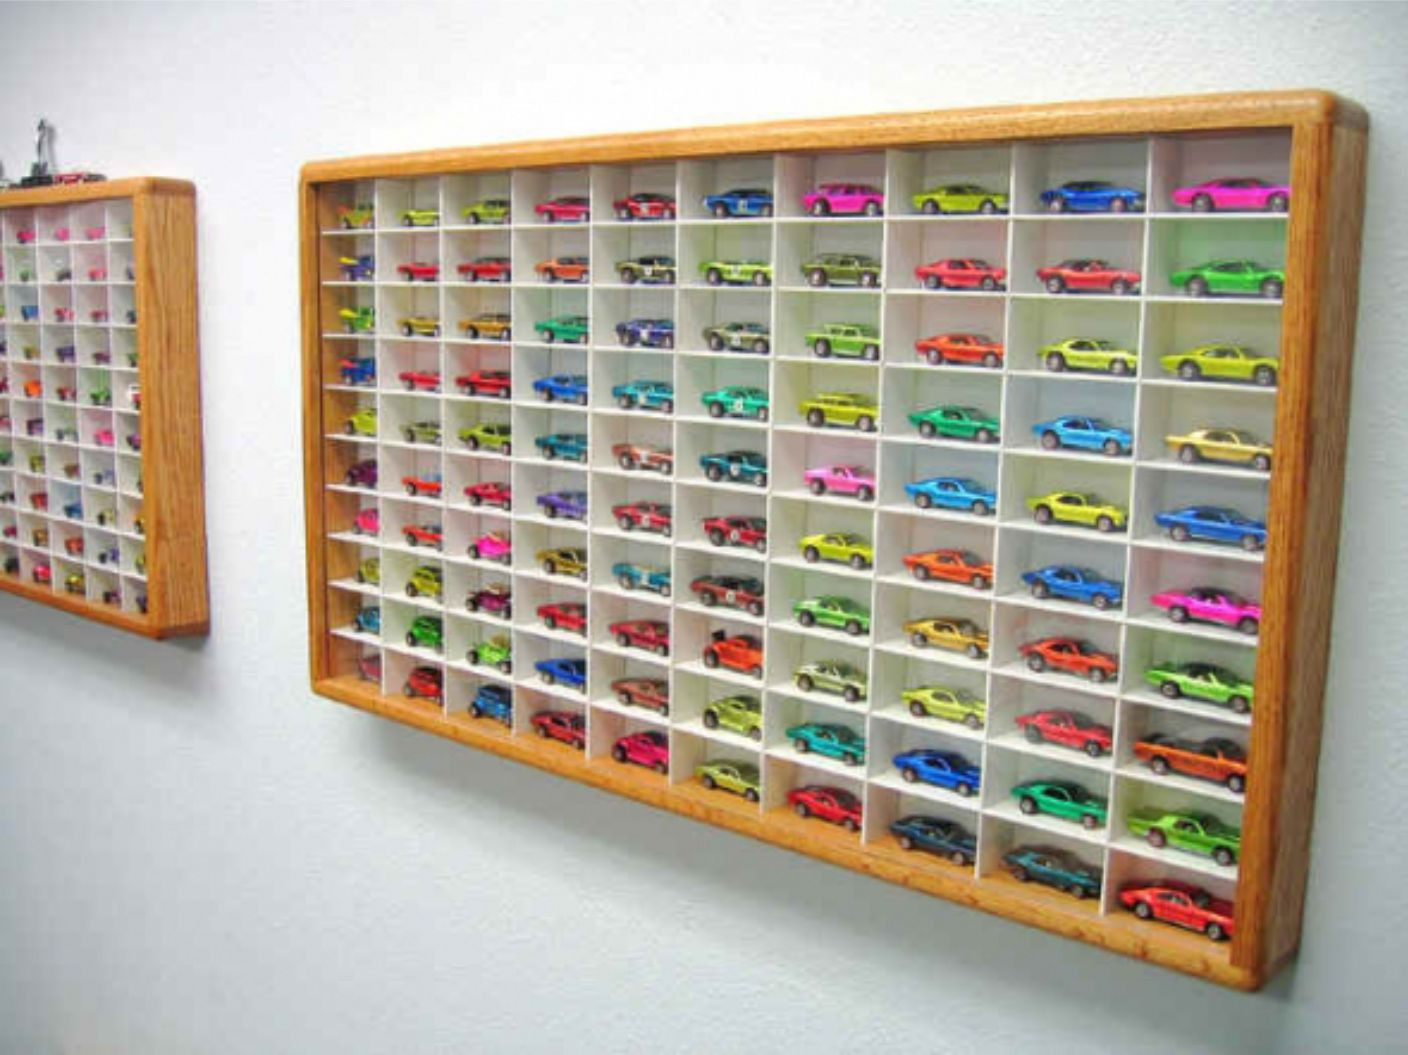 Best ideas about Hot Wheels Storage Ideas . Save or Pin Nestling Hot Wheels Storage Now.